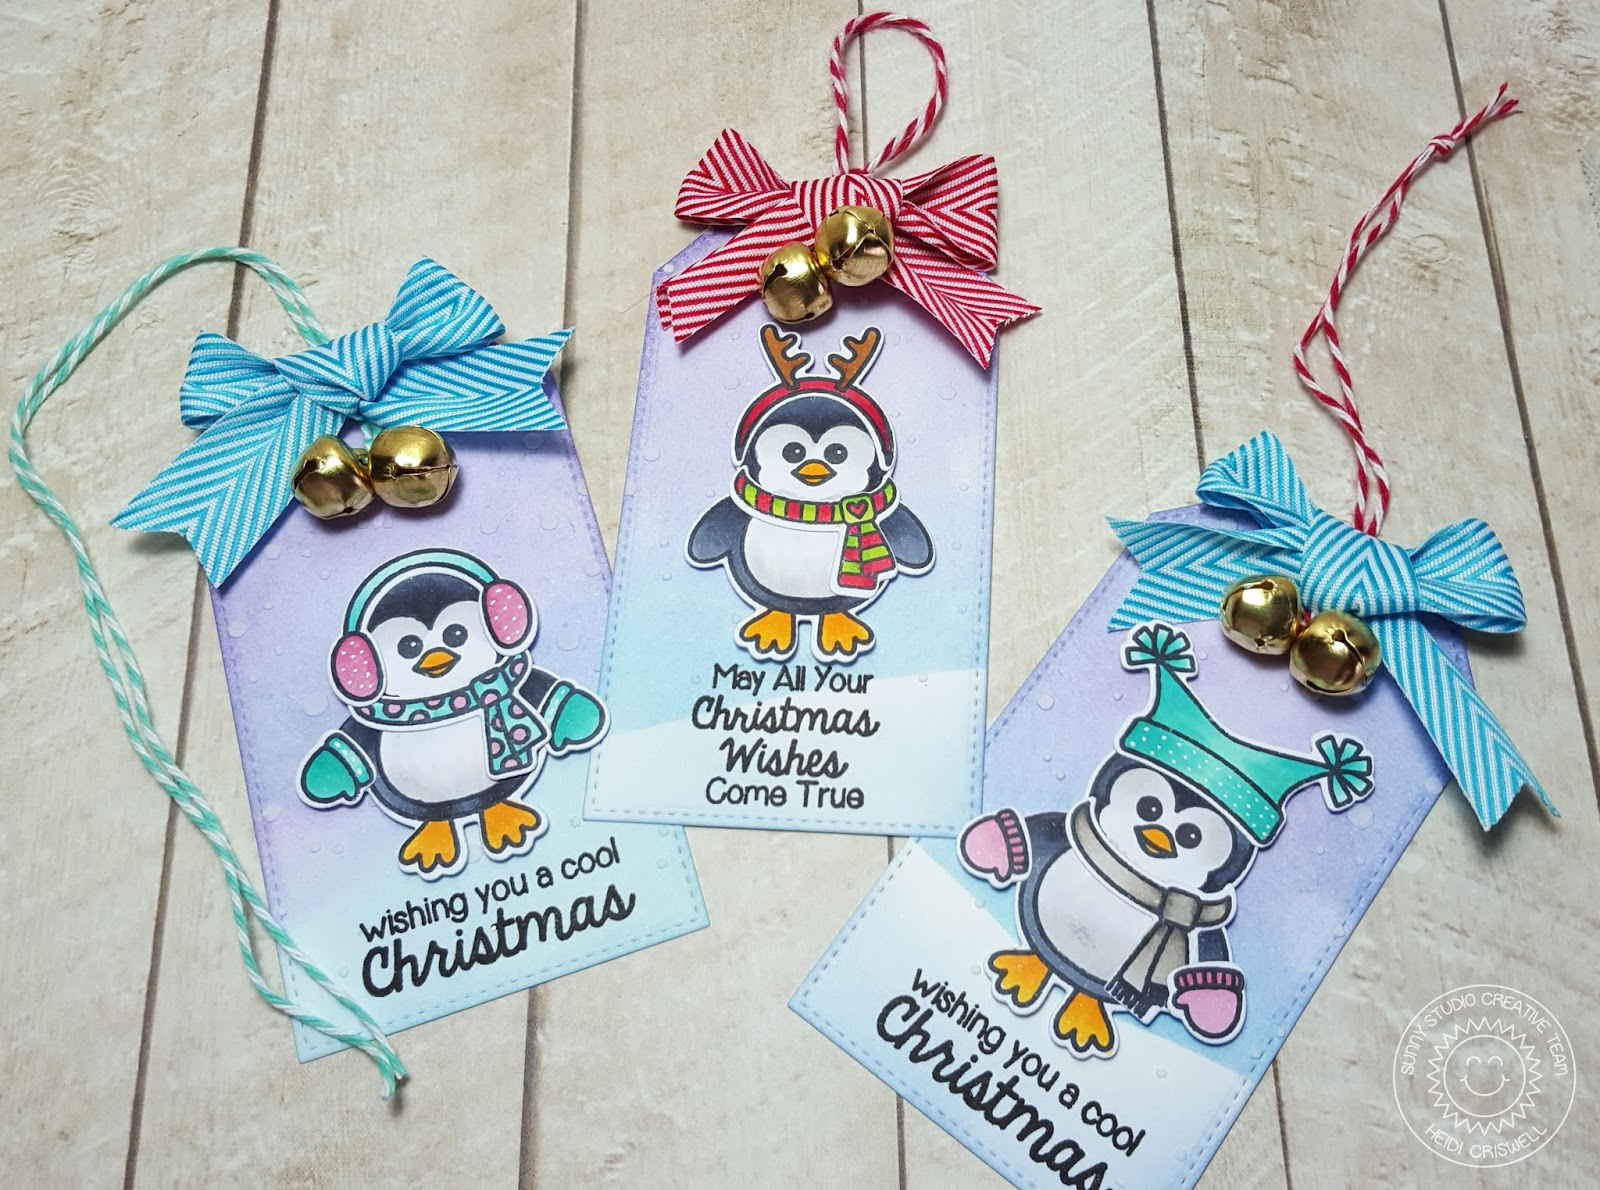 Crafty Time 4U: Bundle Up Tags Featuring Sunni Studio Stamps